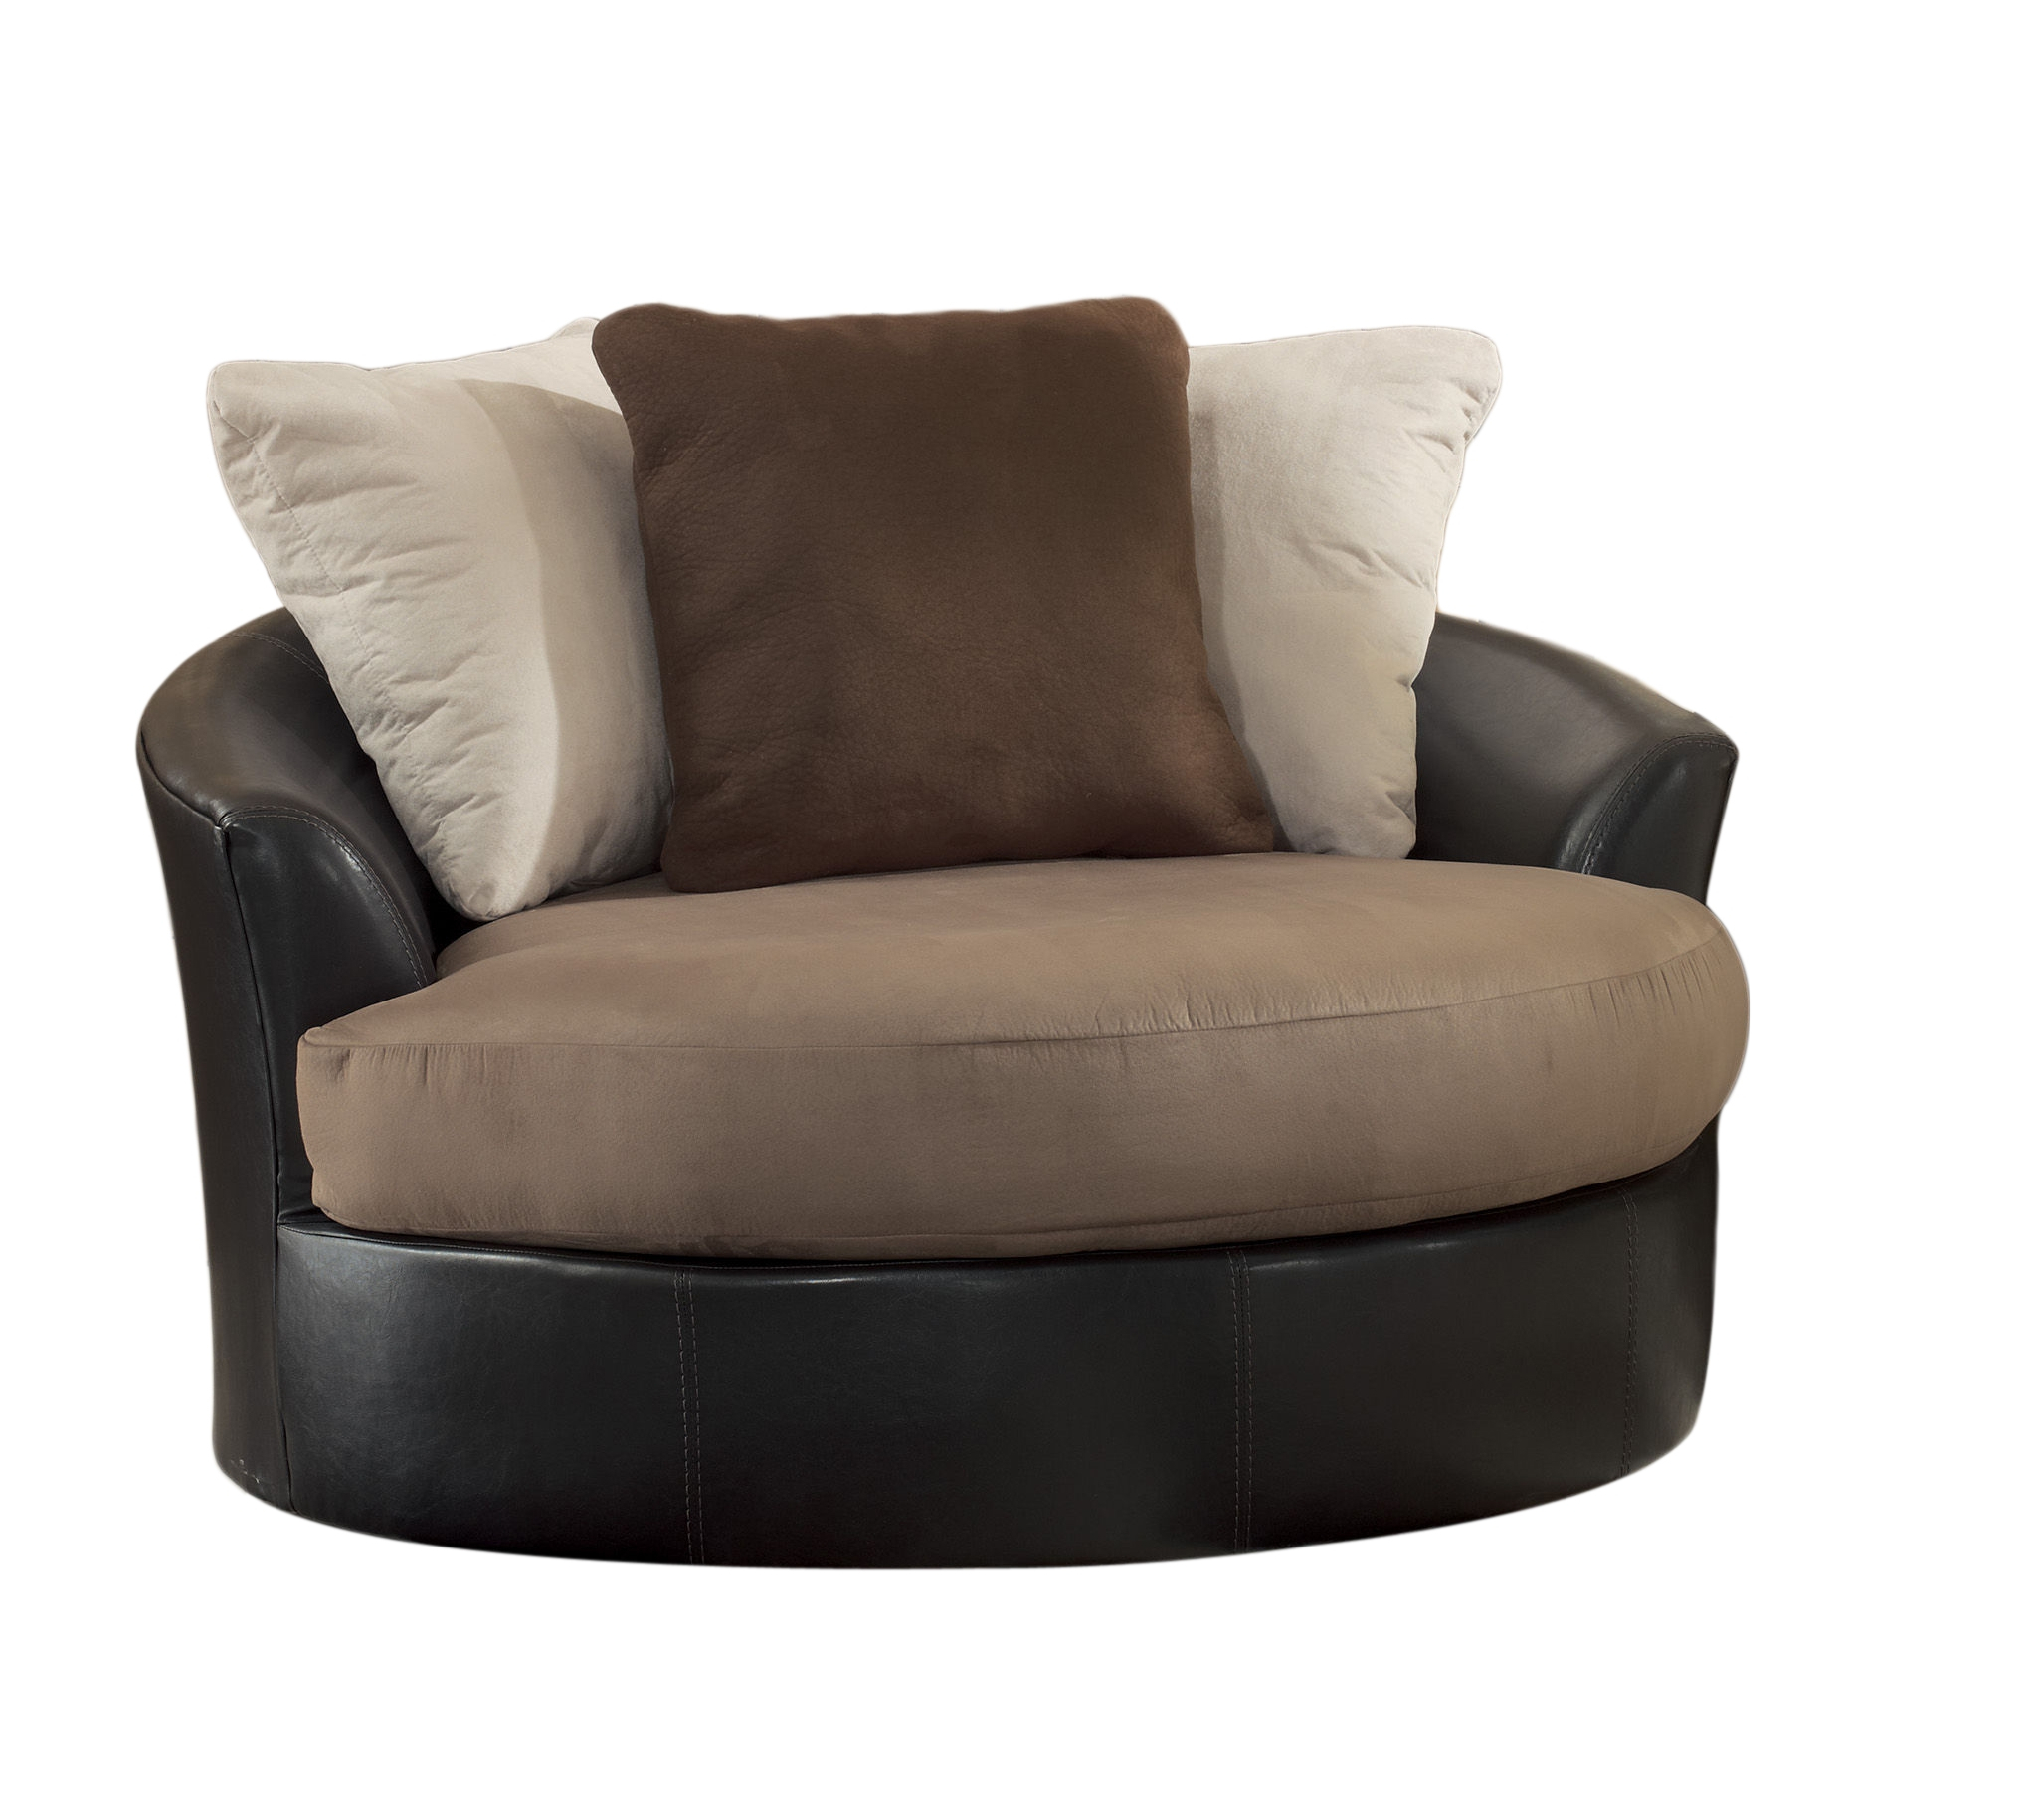 Masoli Mocha Faux Leather Fabric Oversized Swivel Accent Chair | The Intended For Loft Black Swivel Accent Chairs (View 11 of 25)